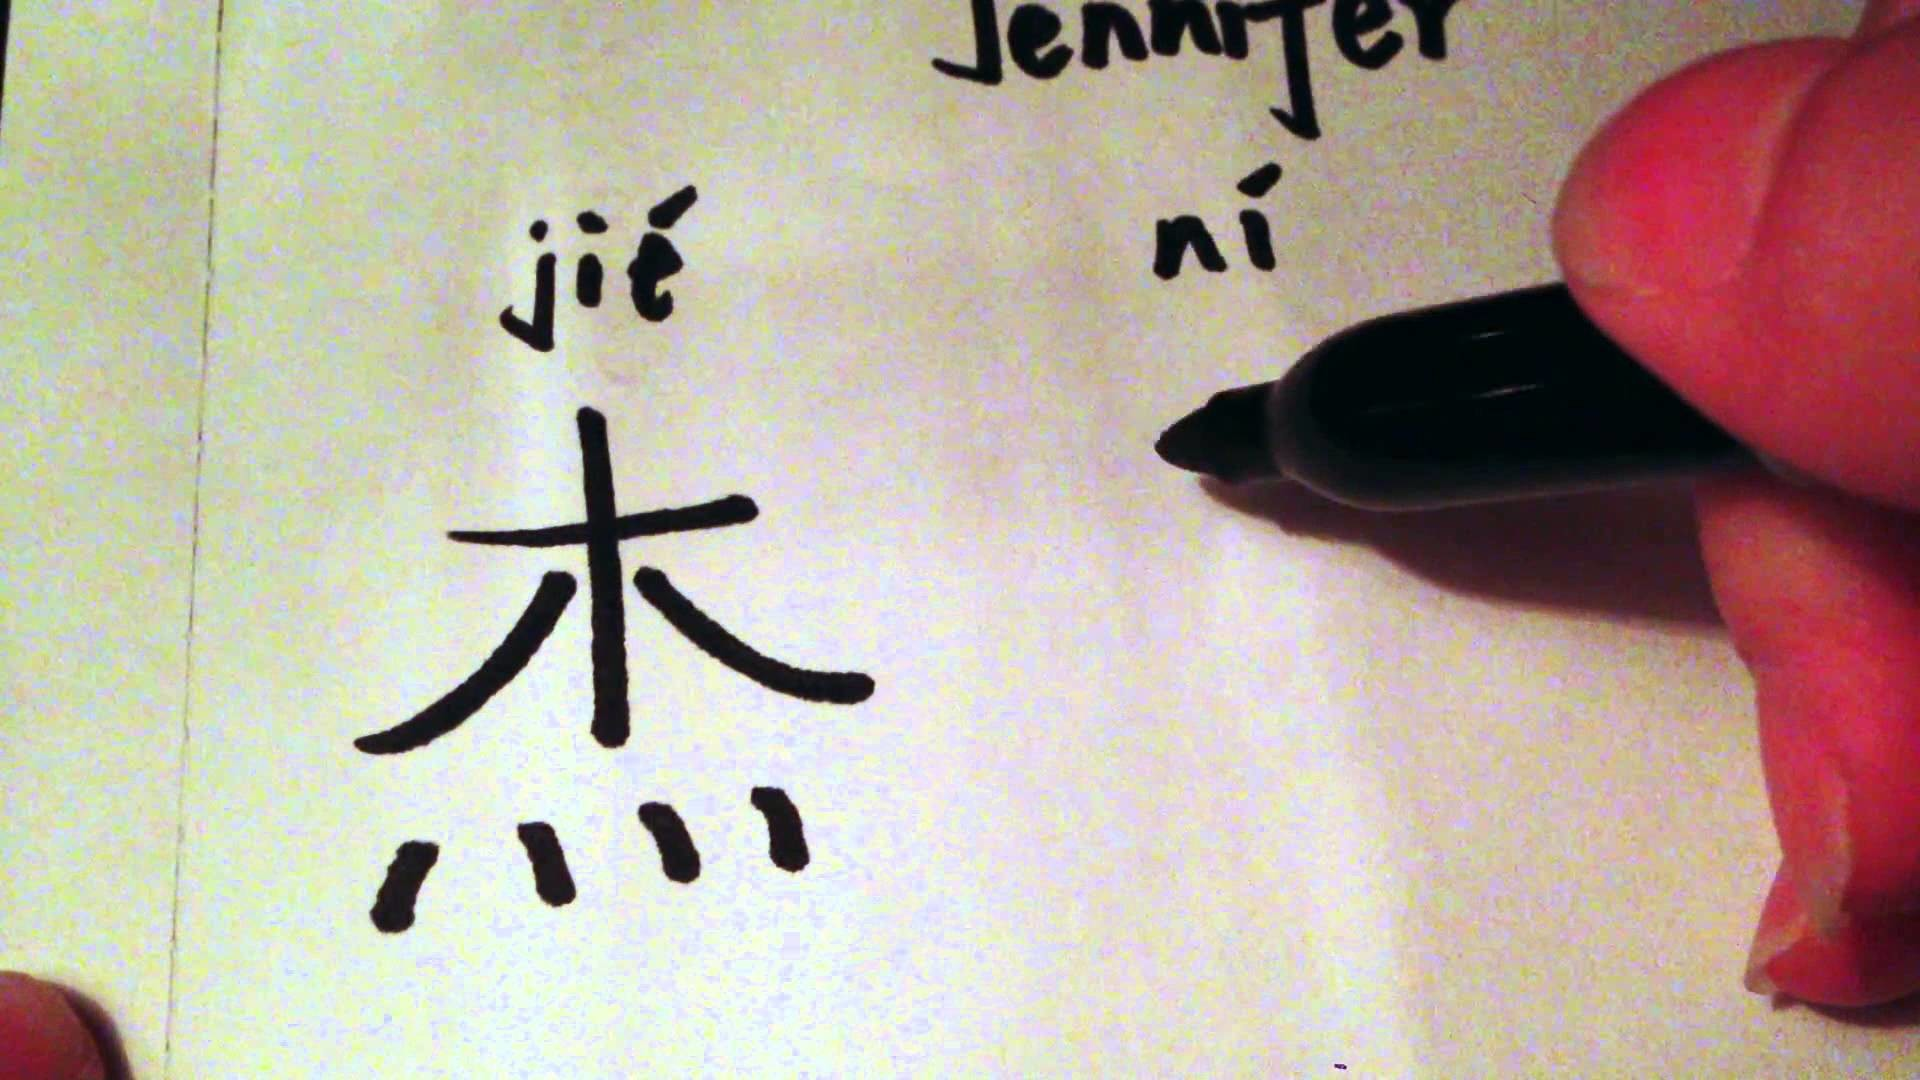 Res: 1920x1080, How to write the name Jennifer in Chinese characters